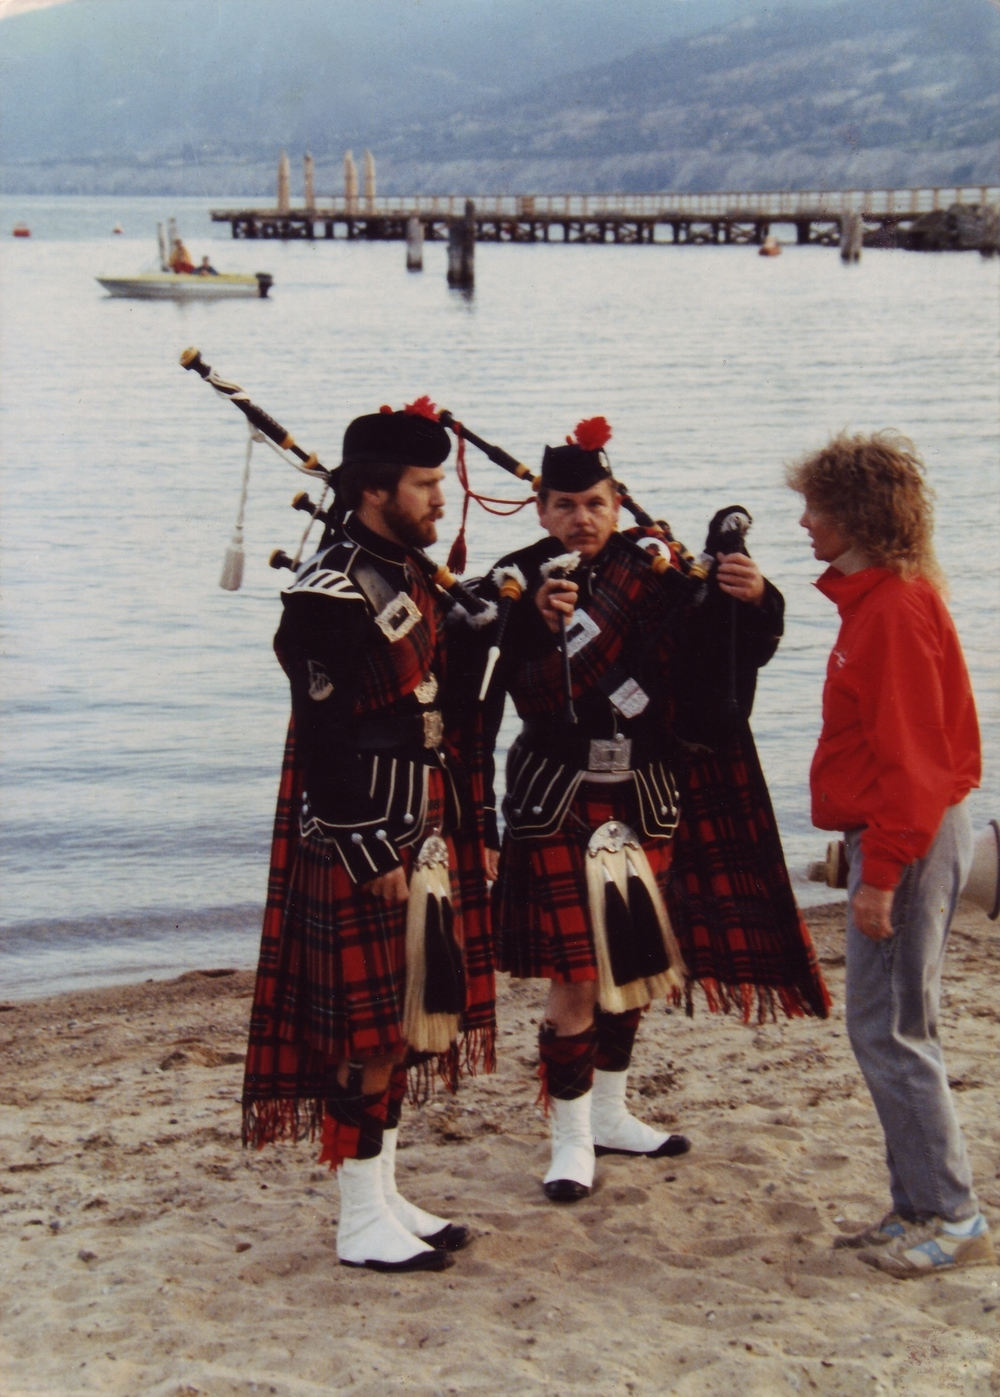 Lynn directing Penticton Pipe Band members at the swim start, 1984.